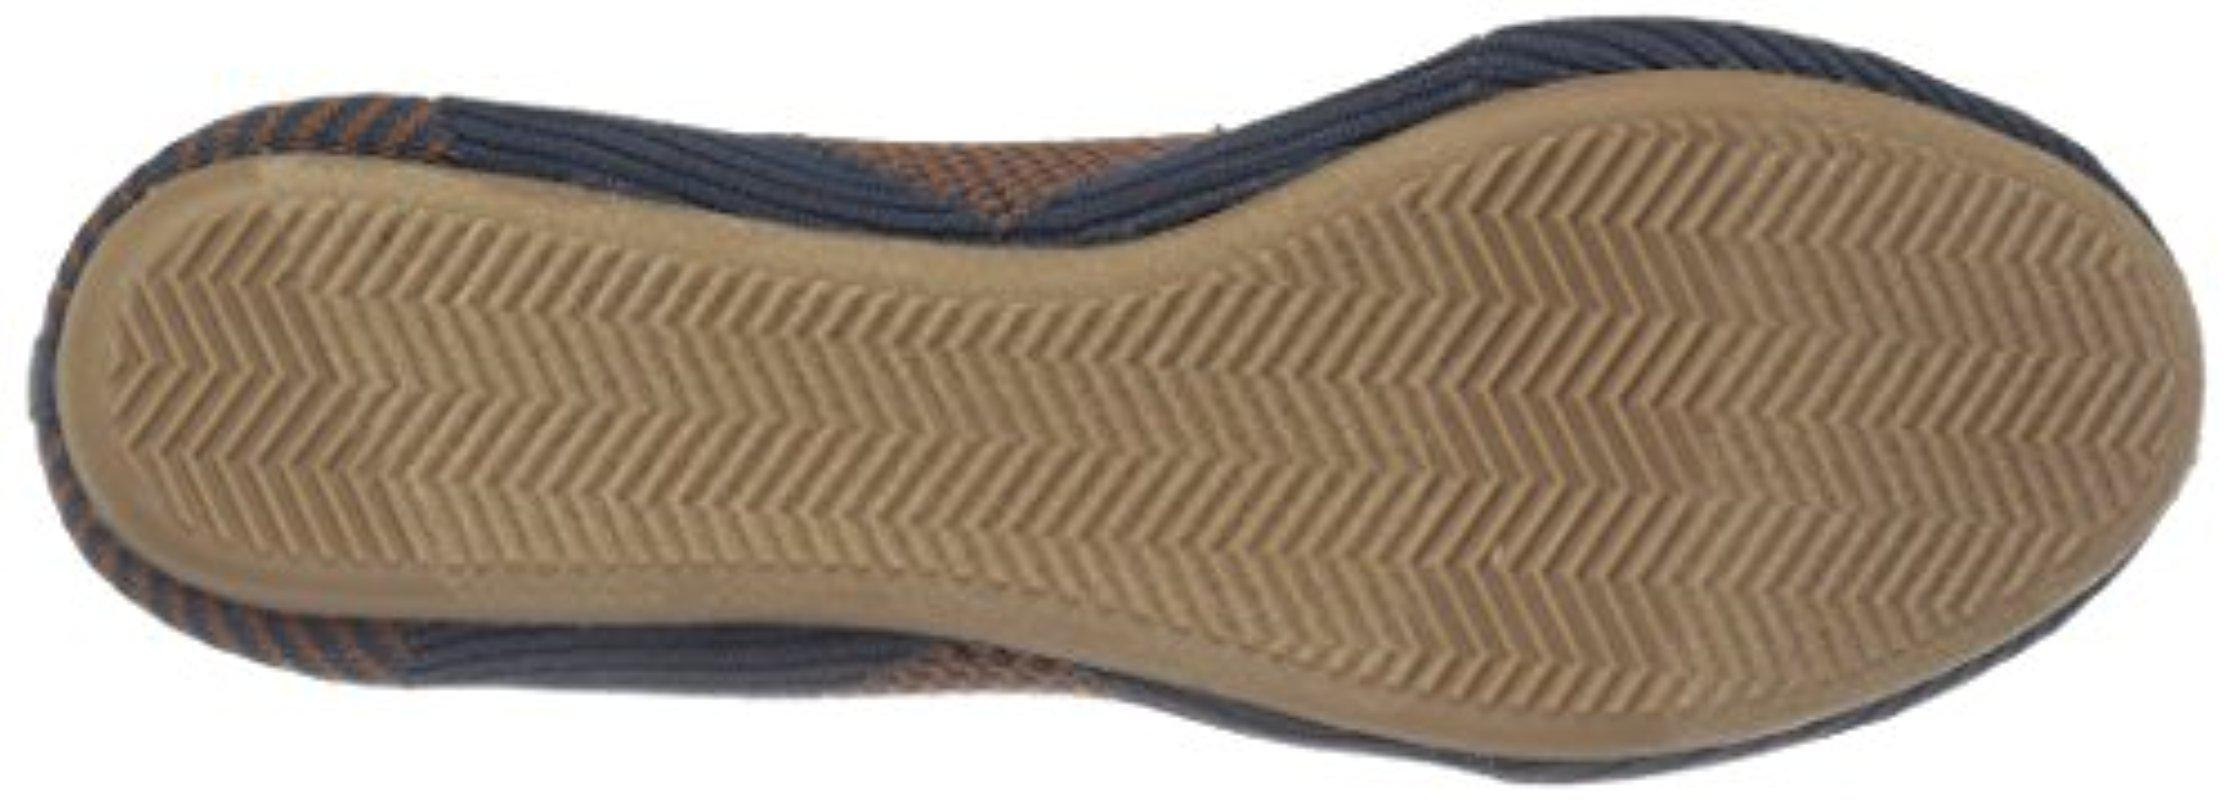 Steven By Steve Madden Leather Nc Beck Flat In Blue Lyst